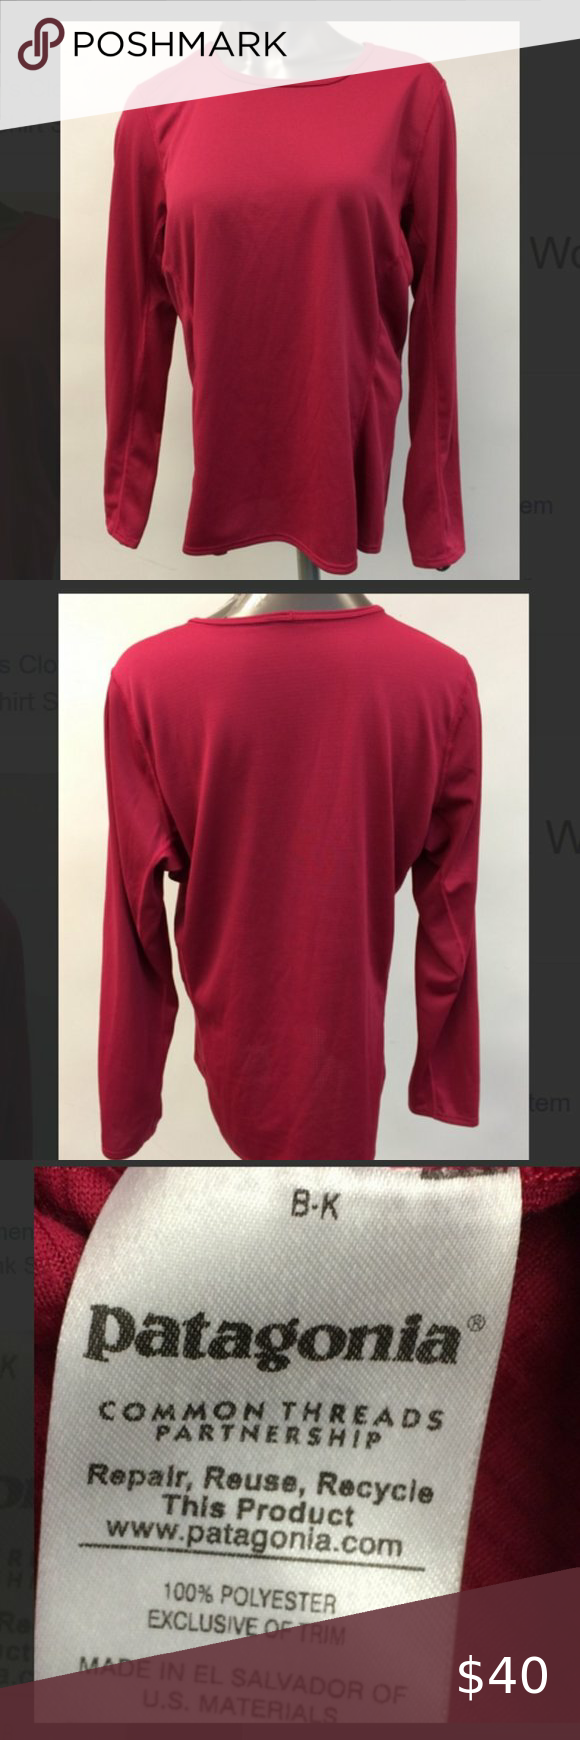 Patagonia Long Sleeve Pink Top Size Xl In 2020 Patagonia Long Sleeve Pink Tops Long Sleeve [ 1740 x 580 Pixel ]